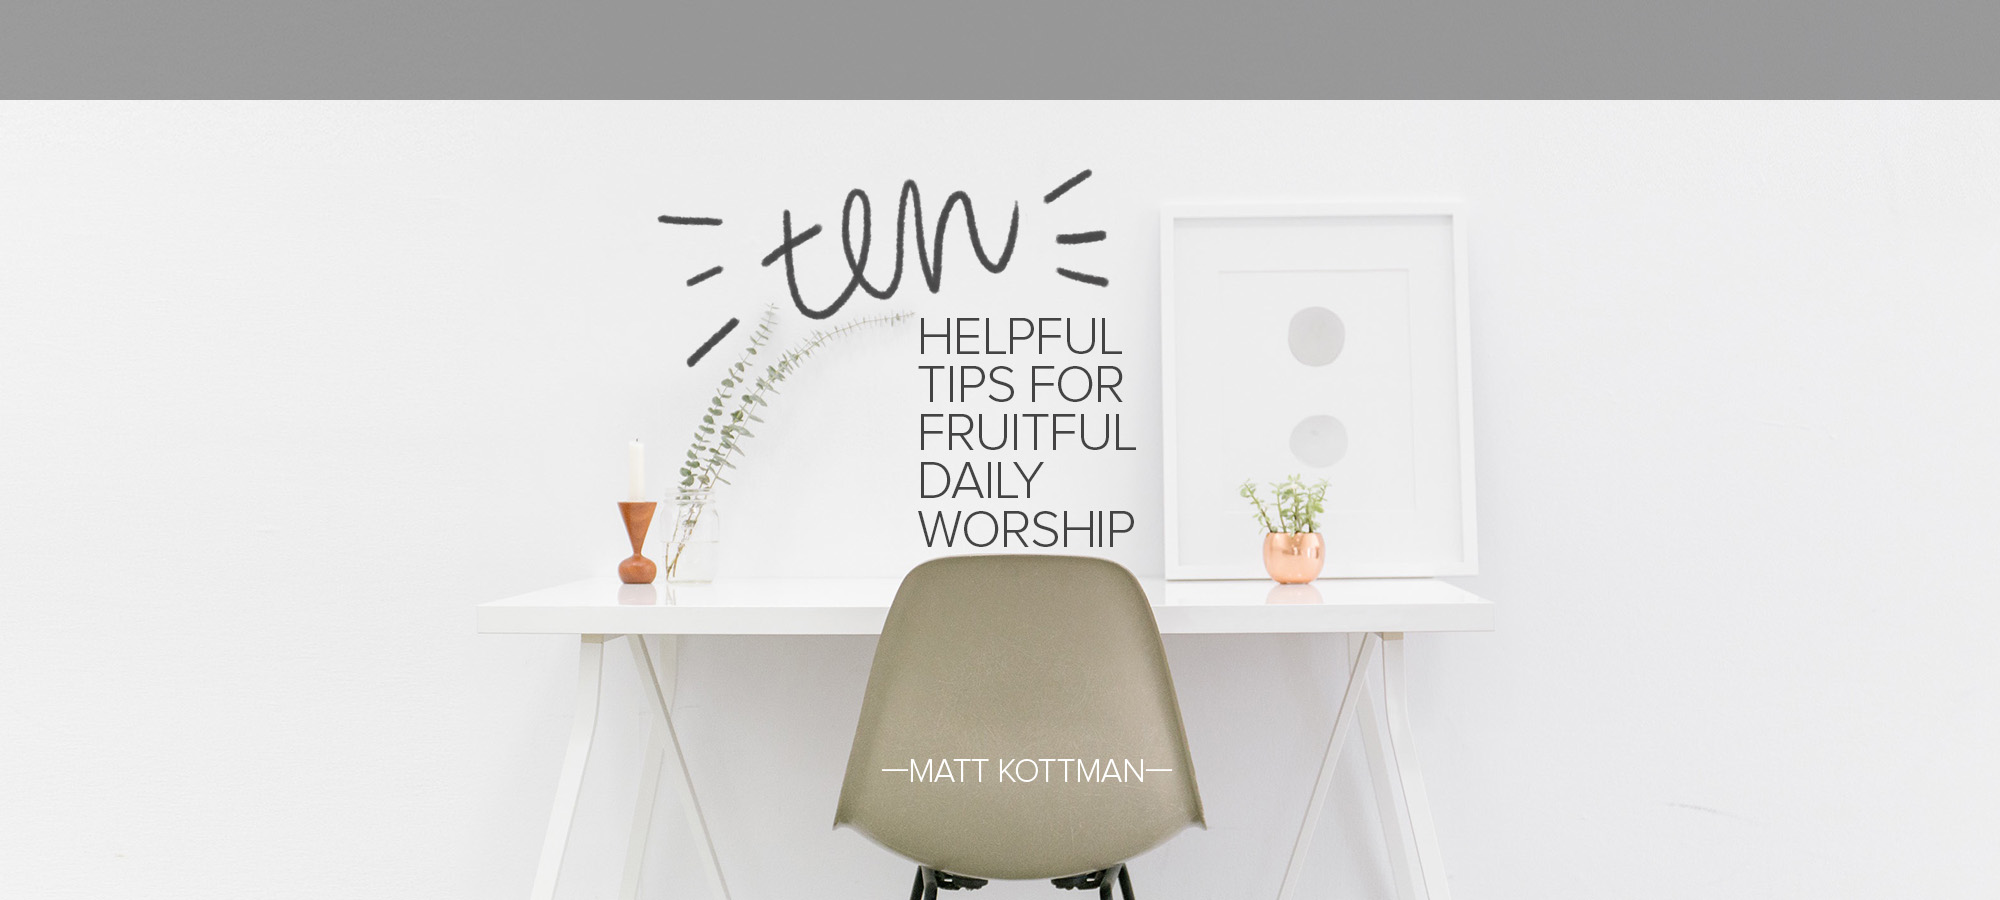 Ten Helpful Tips for Fruitful Daily Worship